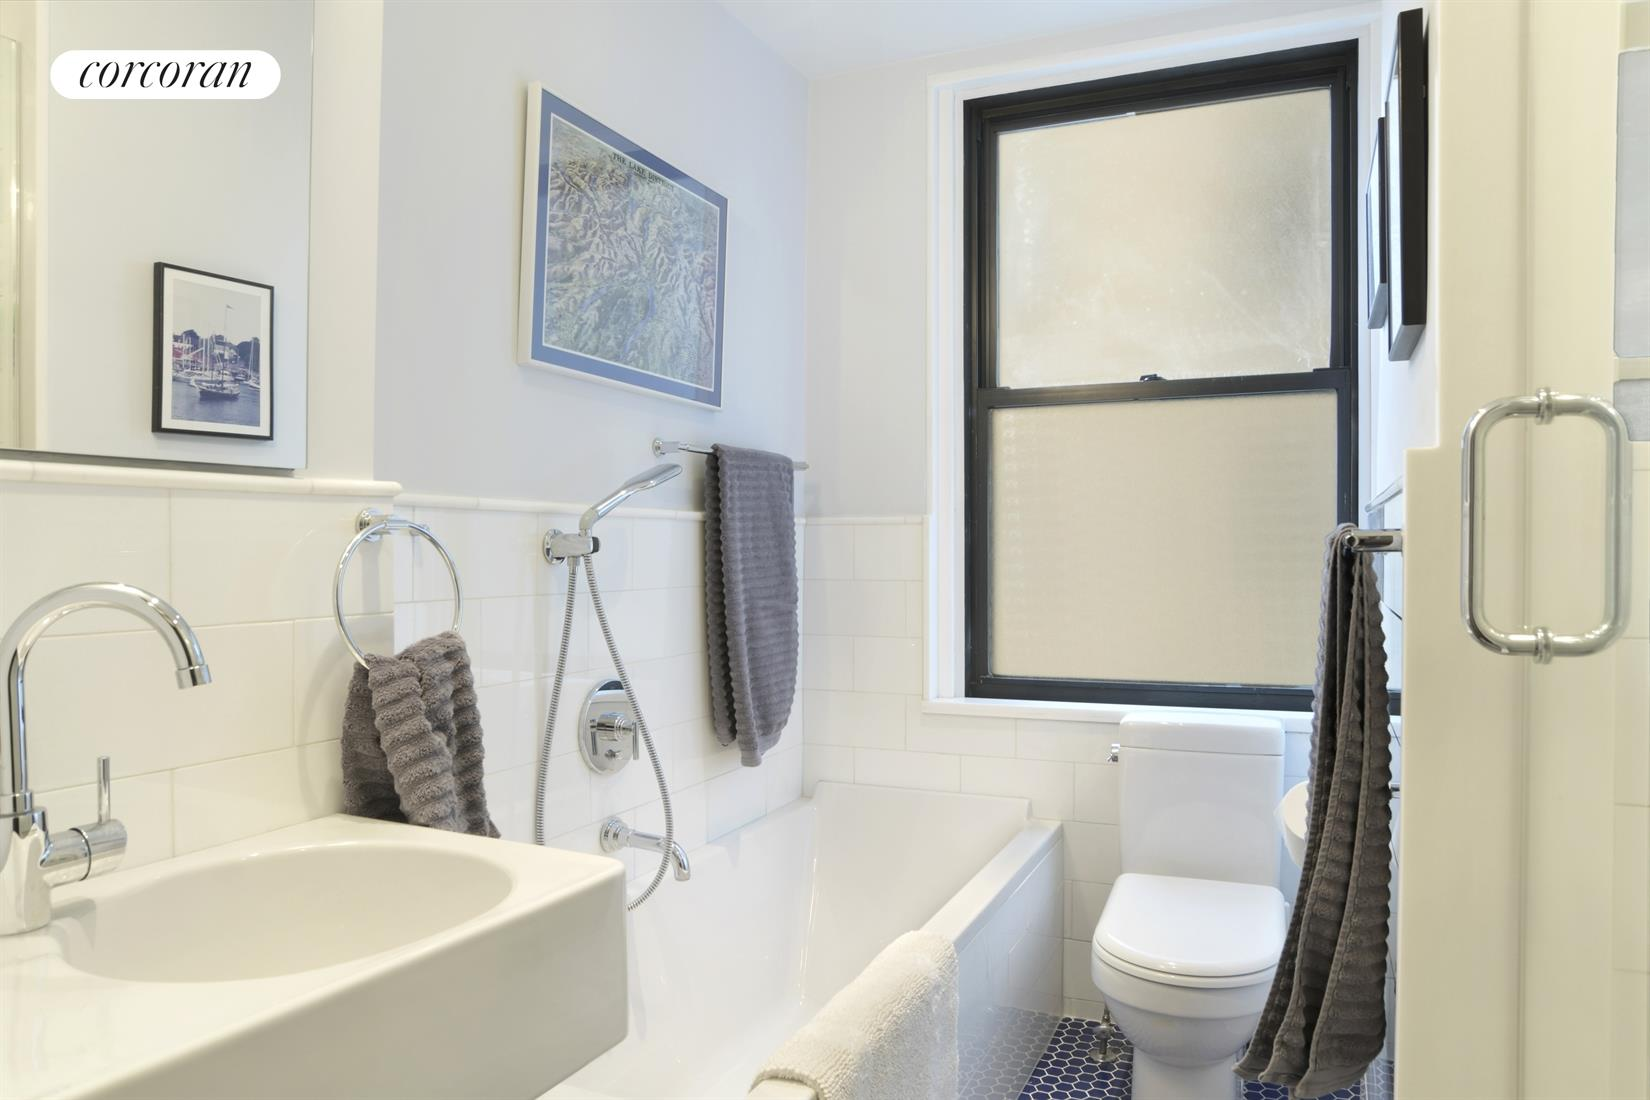 Corcoran, 135 Eastern Parkway, Apt. 9G, Prospect Heights Real Estate ...